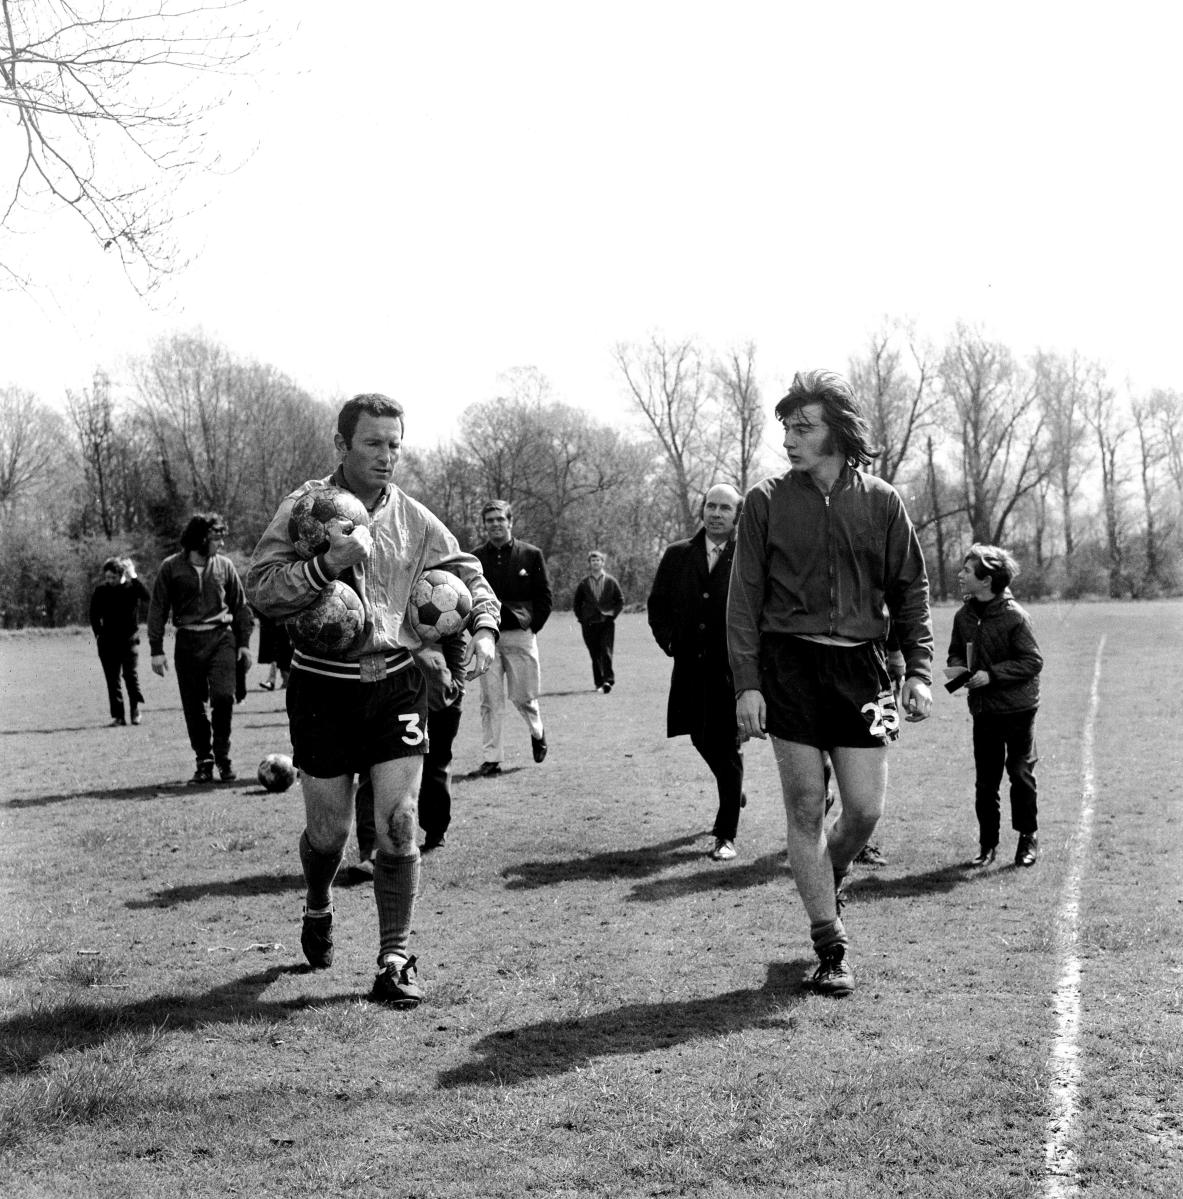 Best and Hudson, Keegan and Cruyff: Playboys v Smart boys